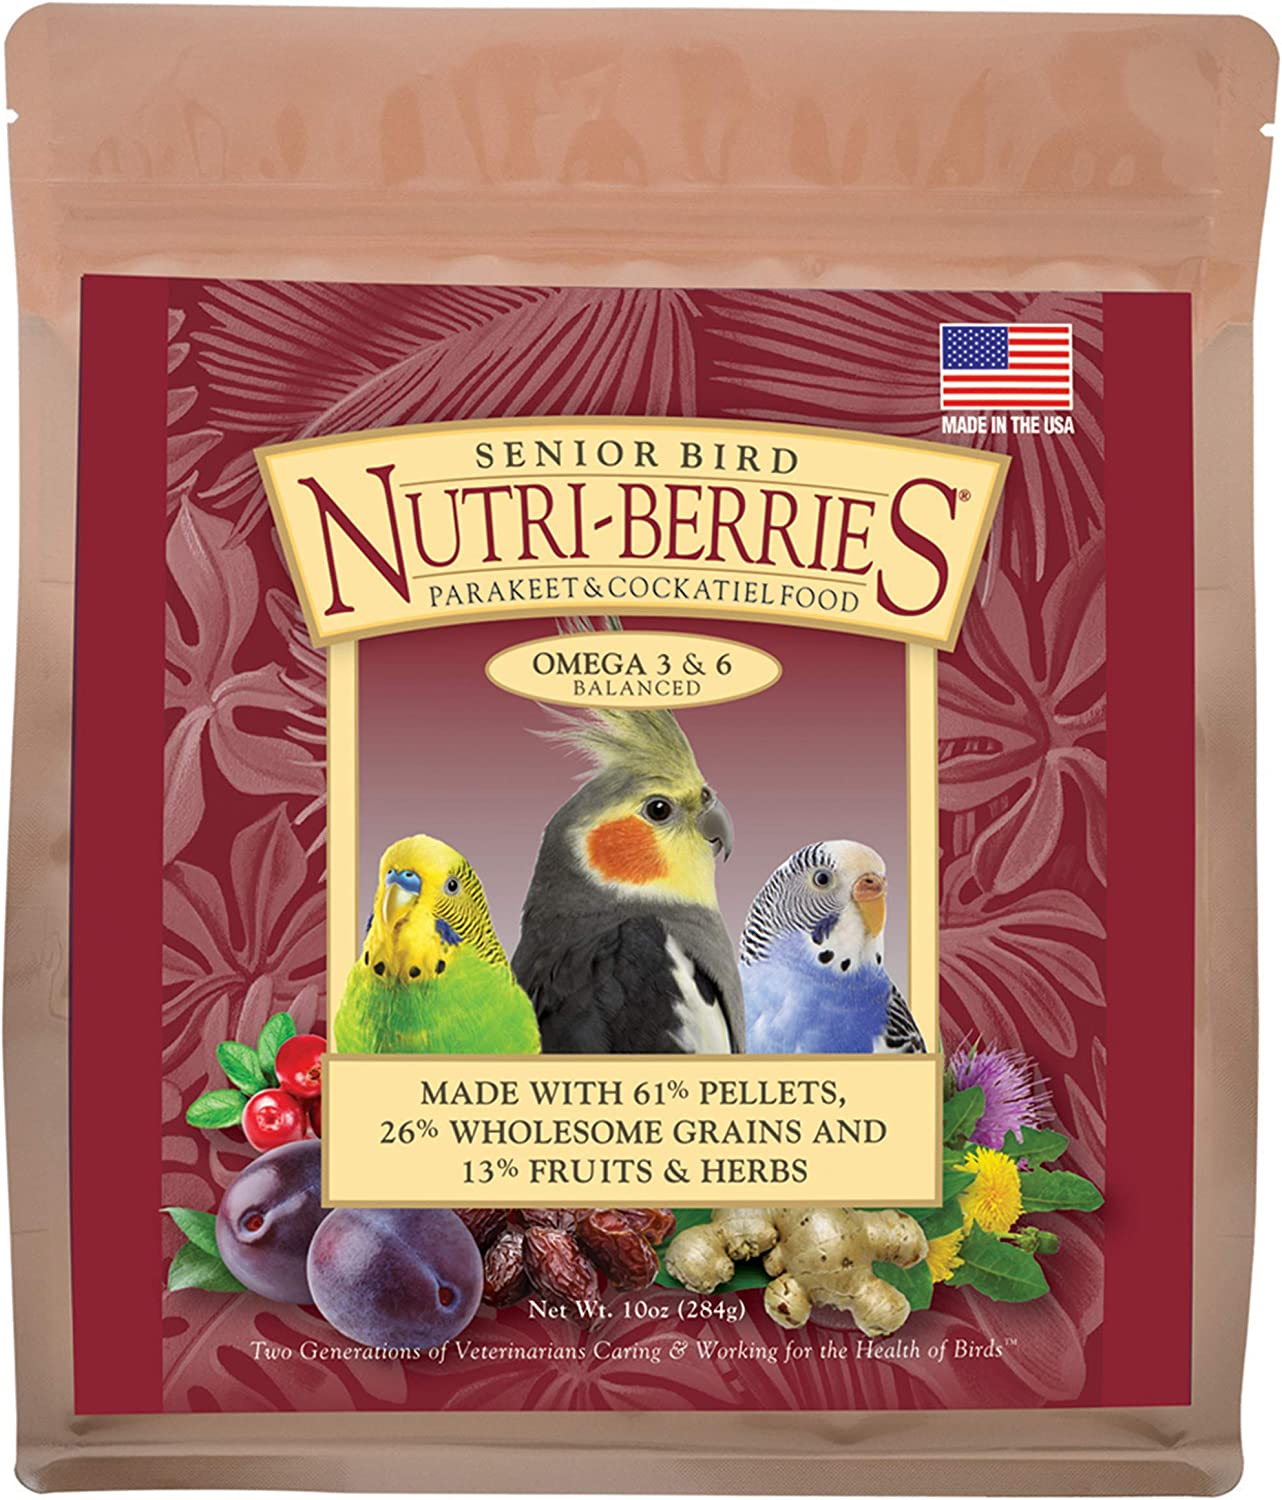 LAFEBER'S Senior Bird Nutri-Berries Pet Bird Food, Made with Non-GMO and Human-Grade Ingredients